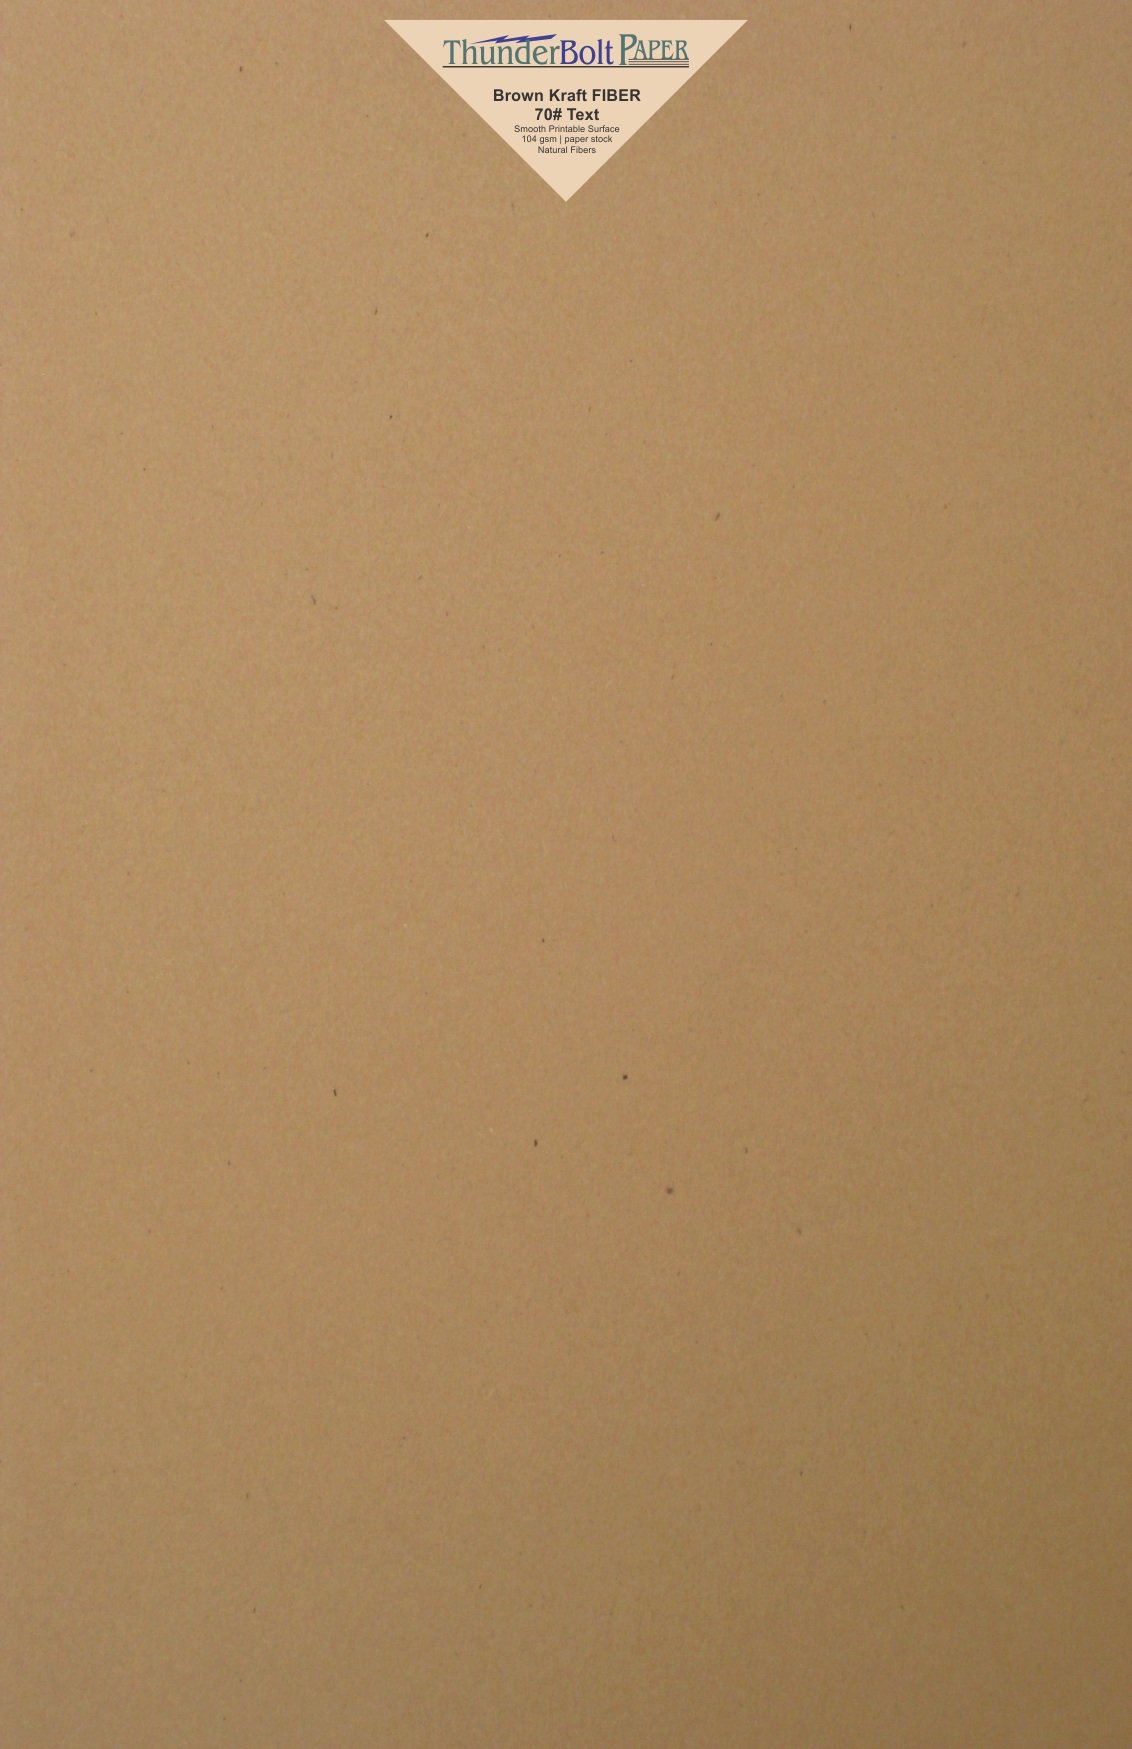 50 Brown Kraft Fiber 28/70 Pound Text (Not Card/Cover) Paper Sheets - 11'' X 17'' (11X17 Inches) Tabloid|Ledger|Booklet Size - Rich Earthy Color with Natural Fibers - Smooth Finish